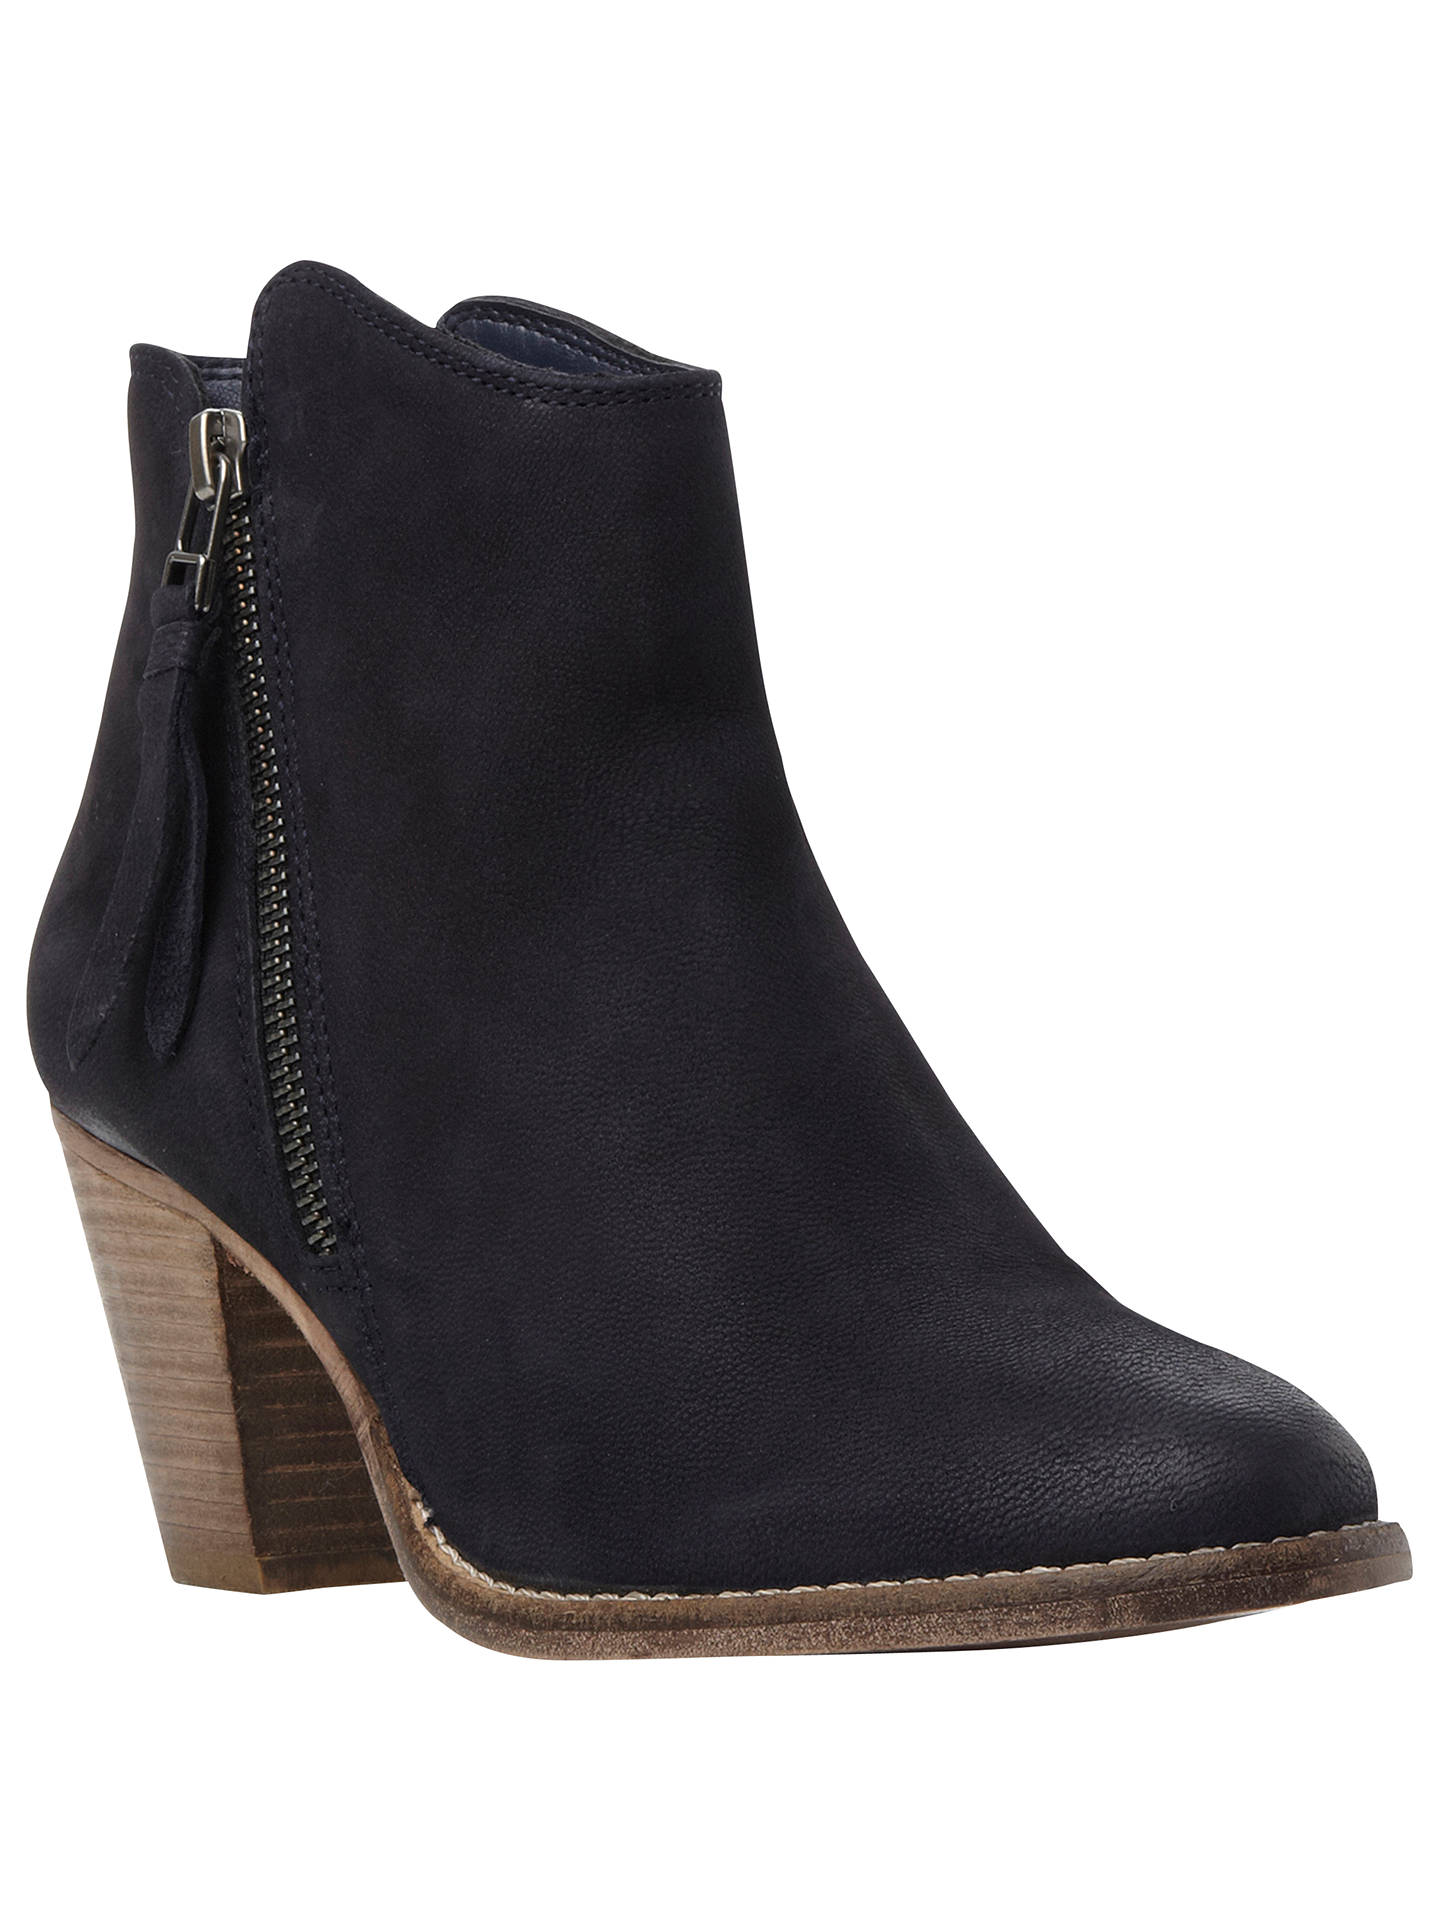 44031627f4f Dune Pollie Leather Western Style Mid Heel Ankle Boots at John Lewis ...